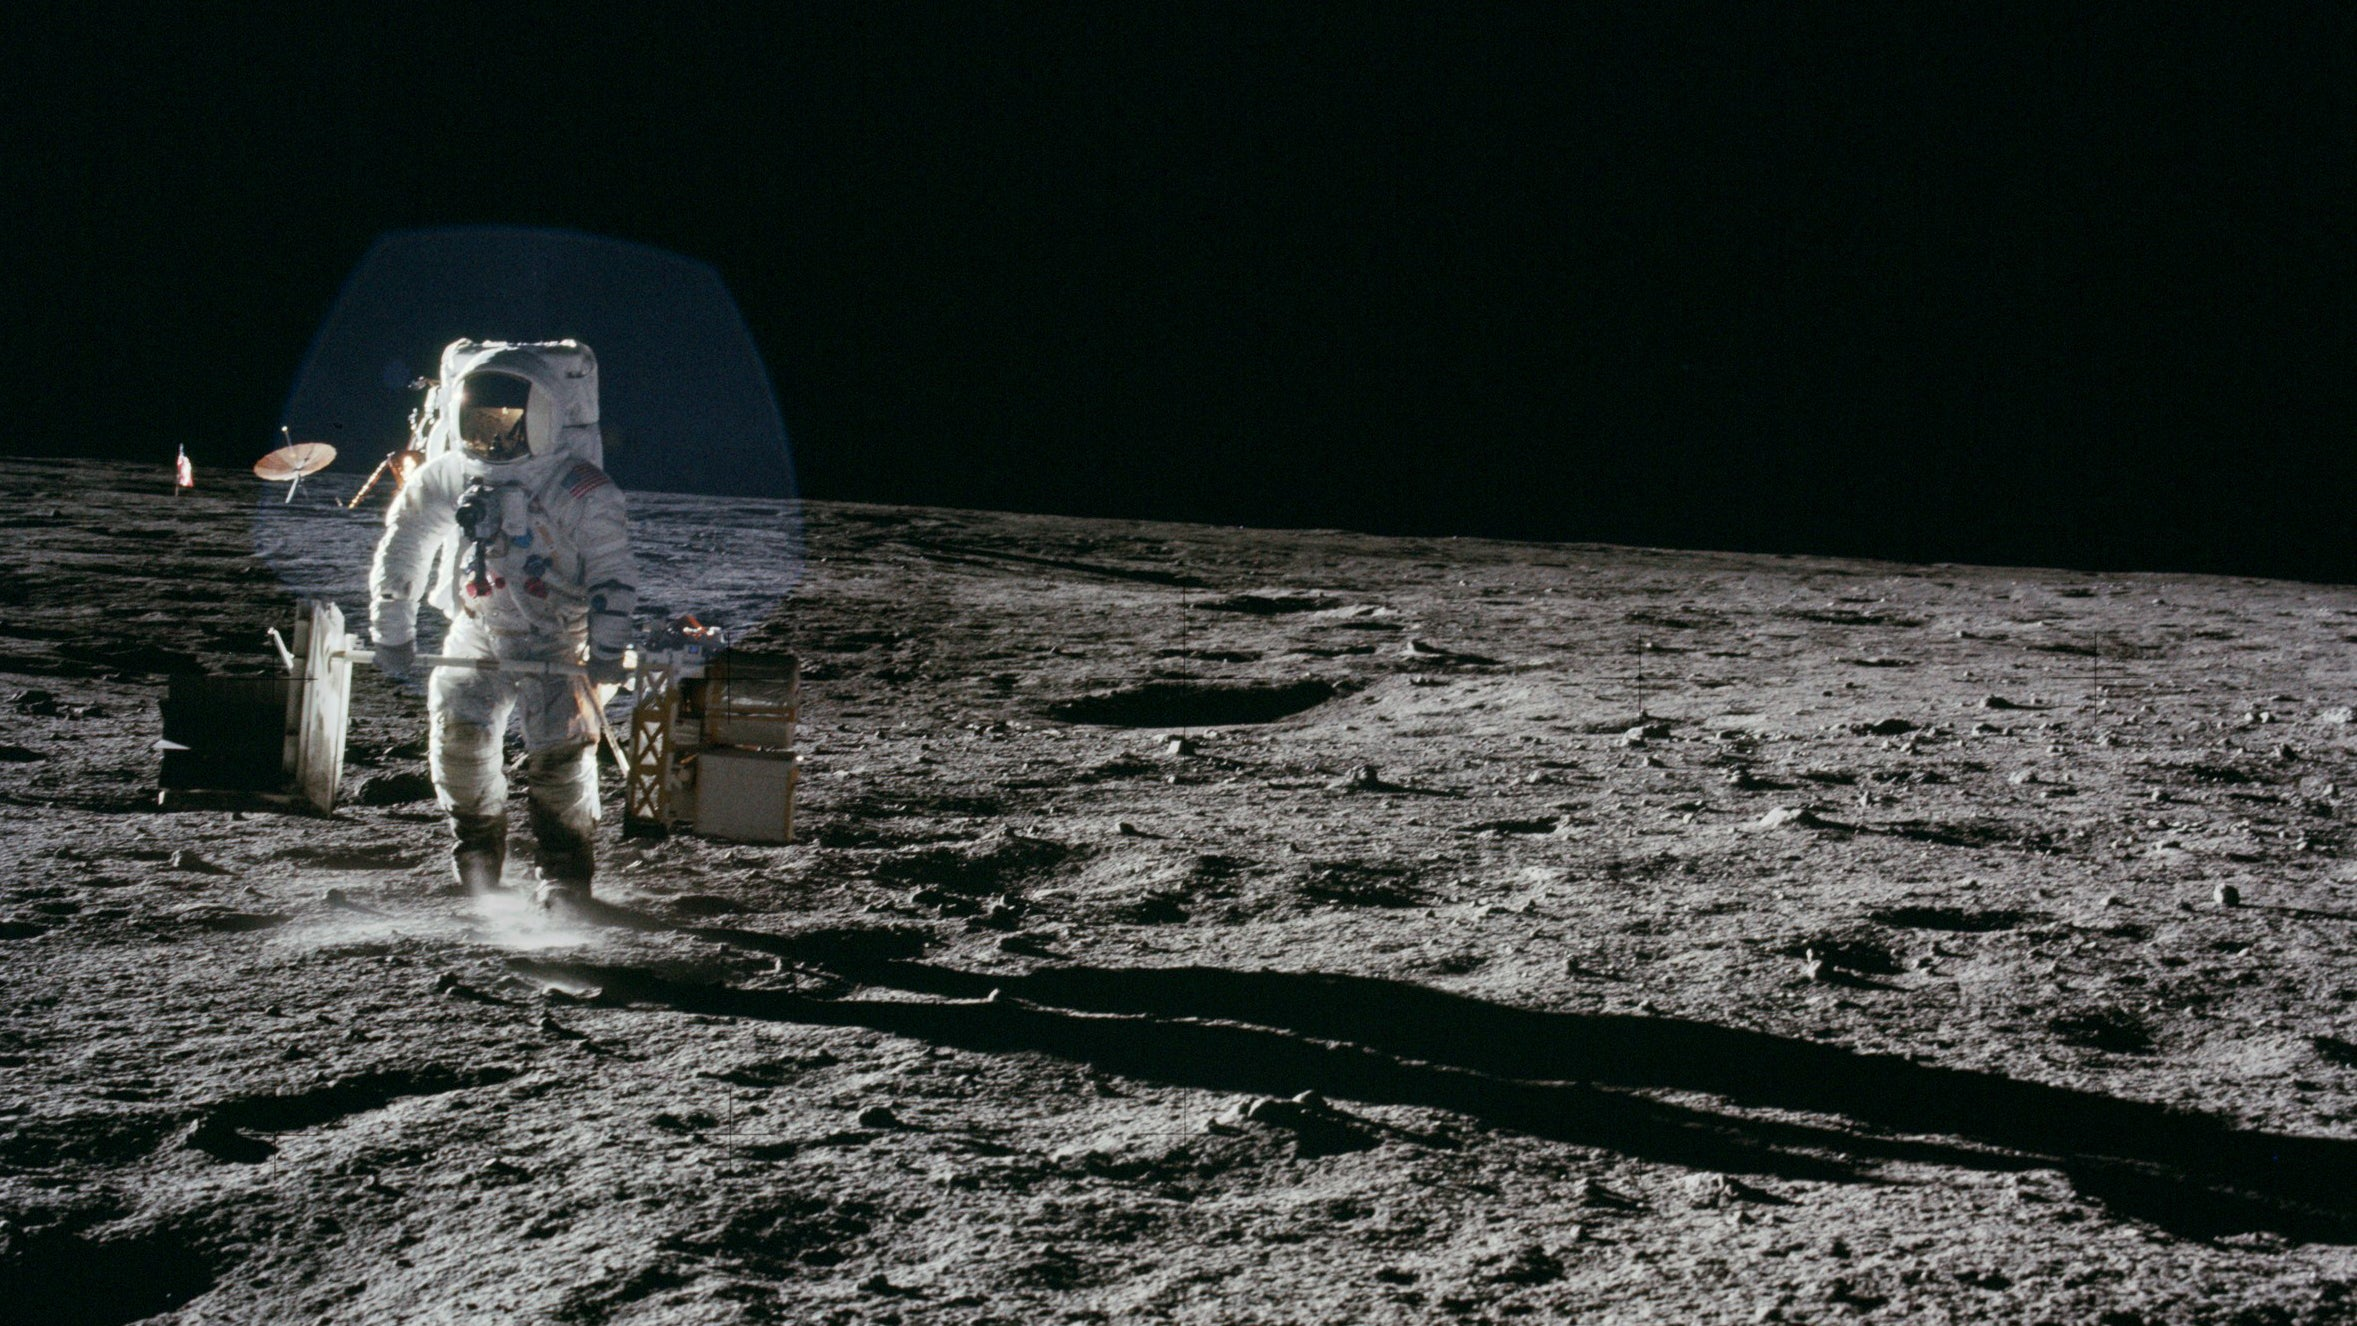 Moon Seismometers From Apollo Are Still Helping Solve Physics Mysteries